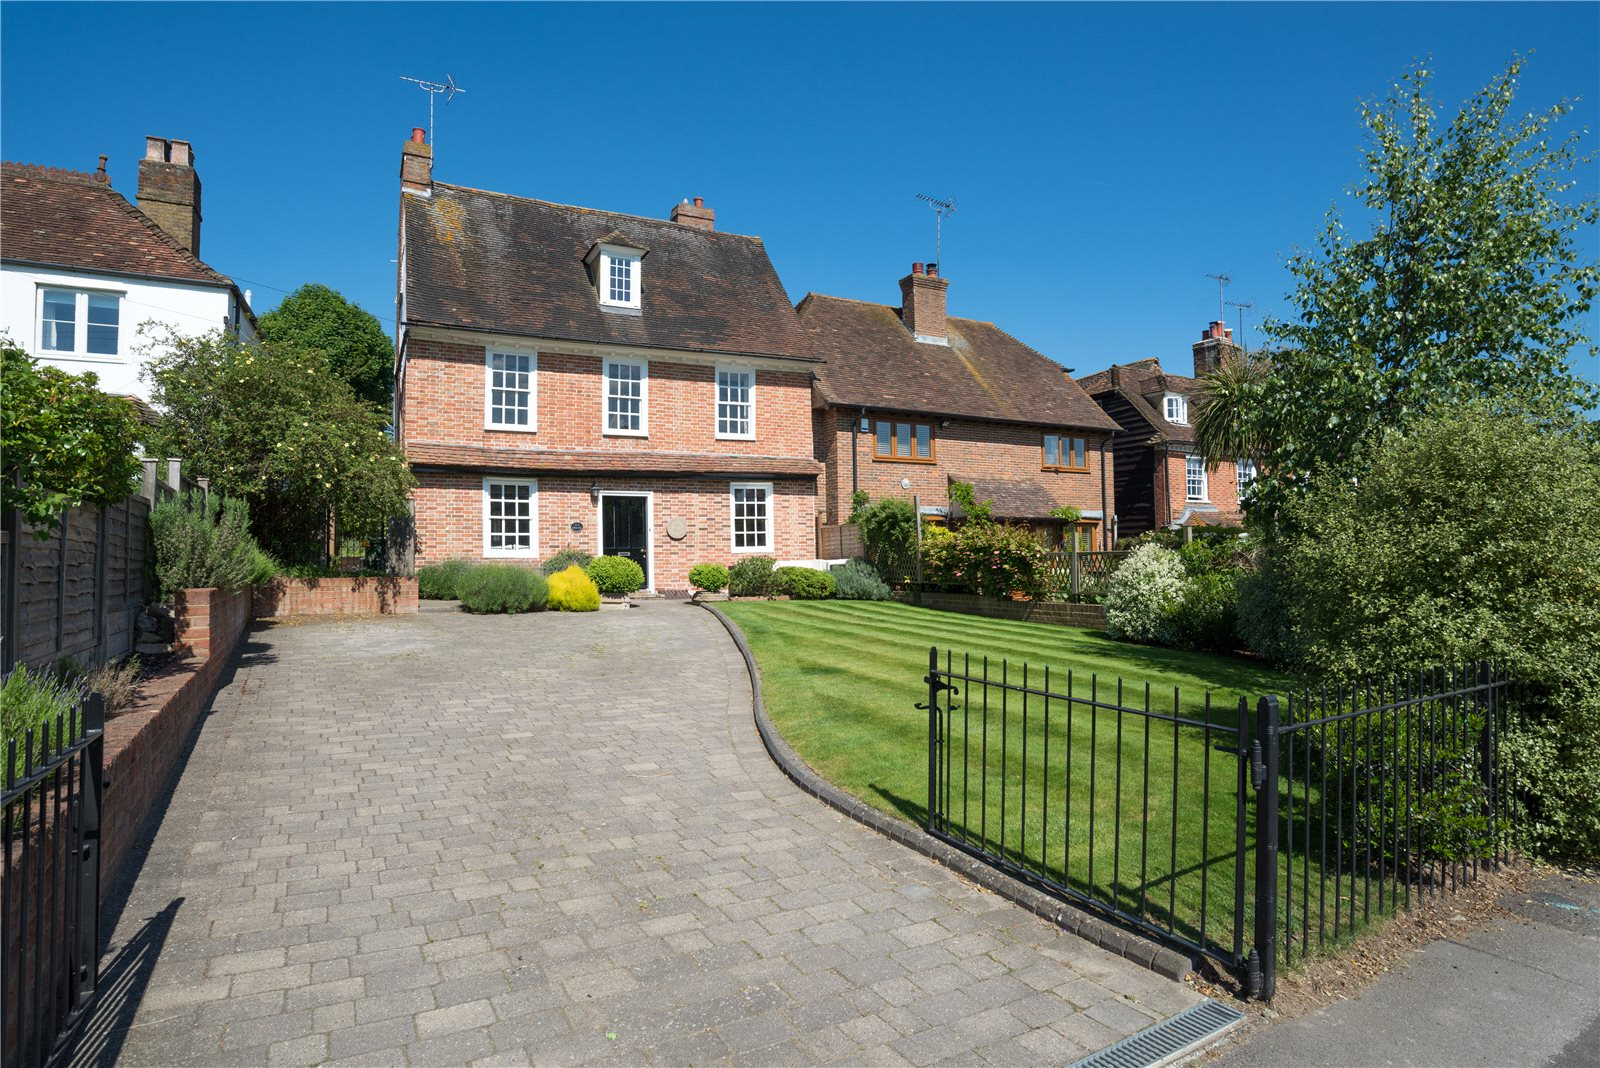 maidstone luxury real estate for sale christie 39 s international real estate